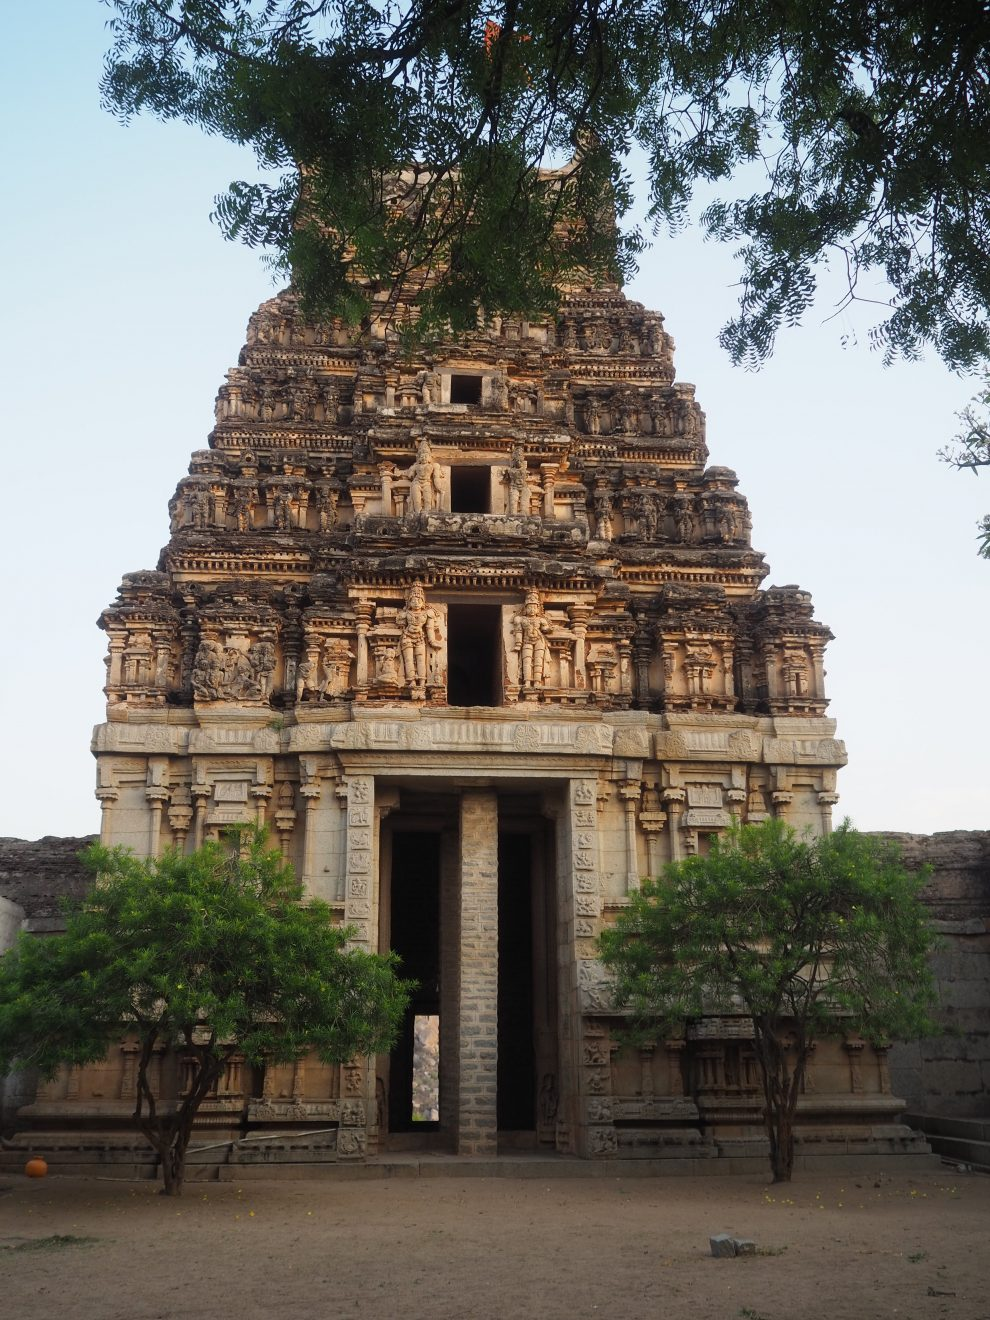 Reizen naar Hampi, Malyavanta Raghunatha temple, travel guide to Hampi India